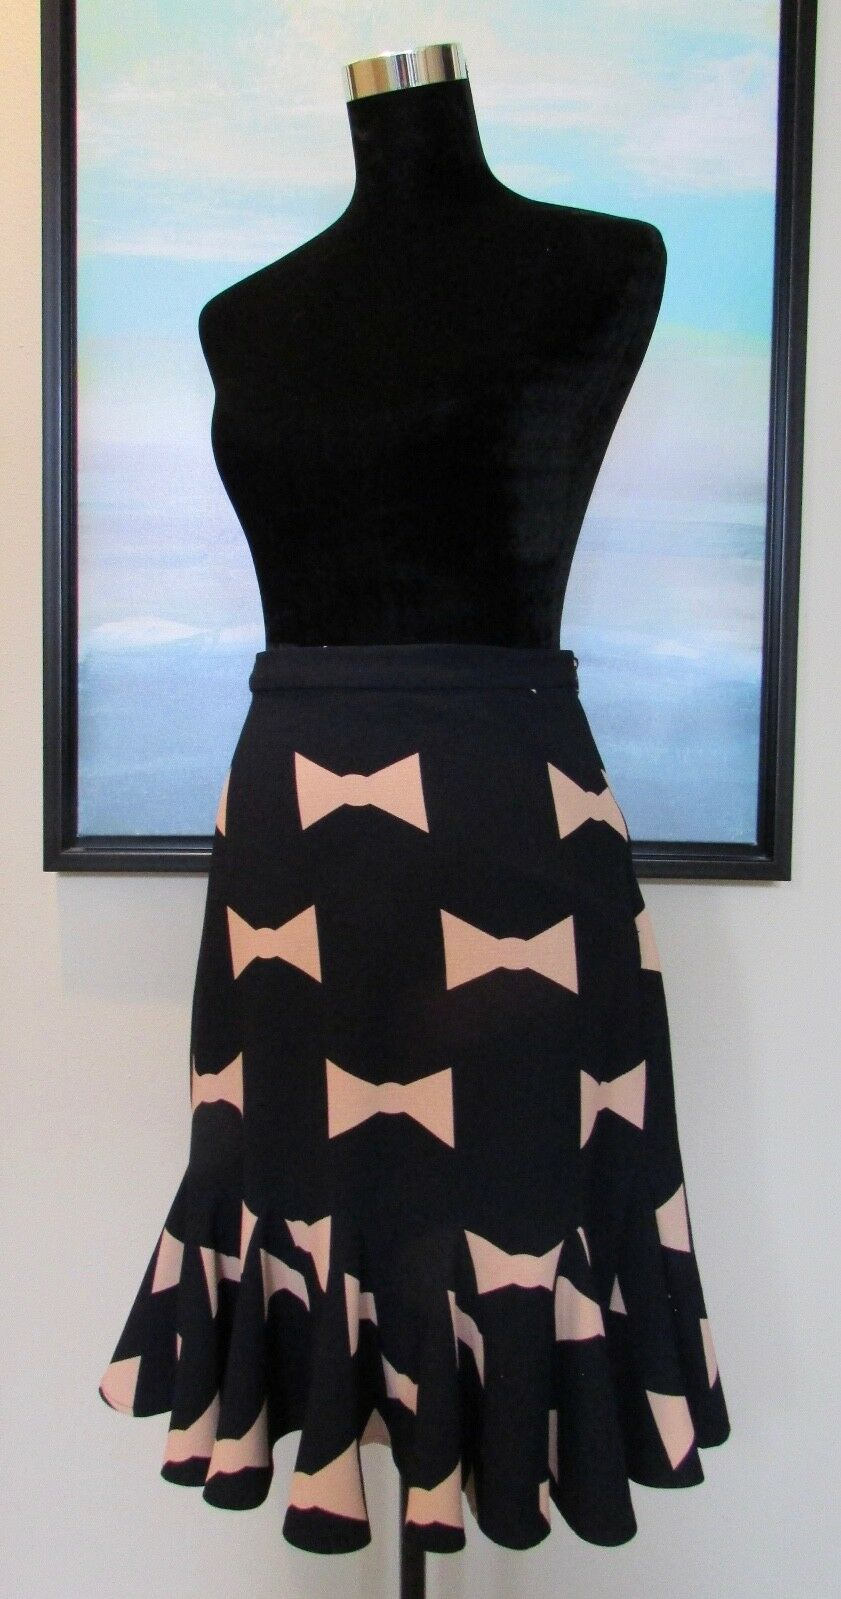 Anthropologie Eva Franco Bow Tie Skirt Sz 4